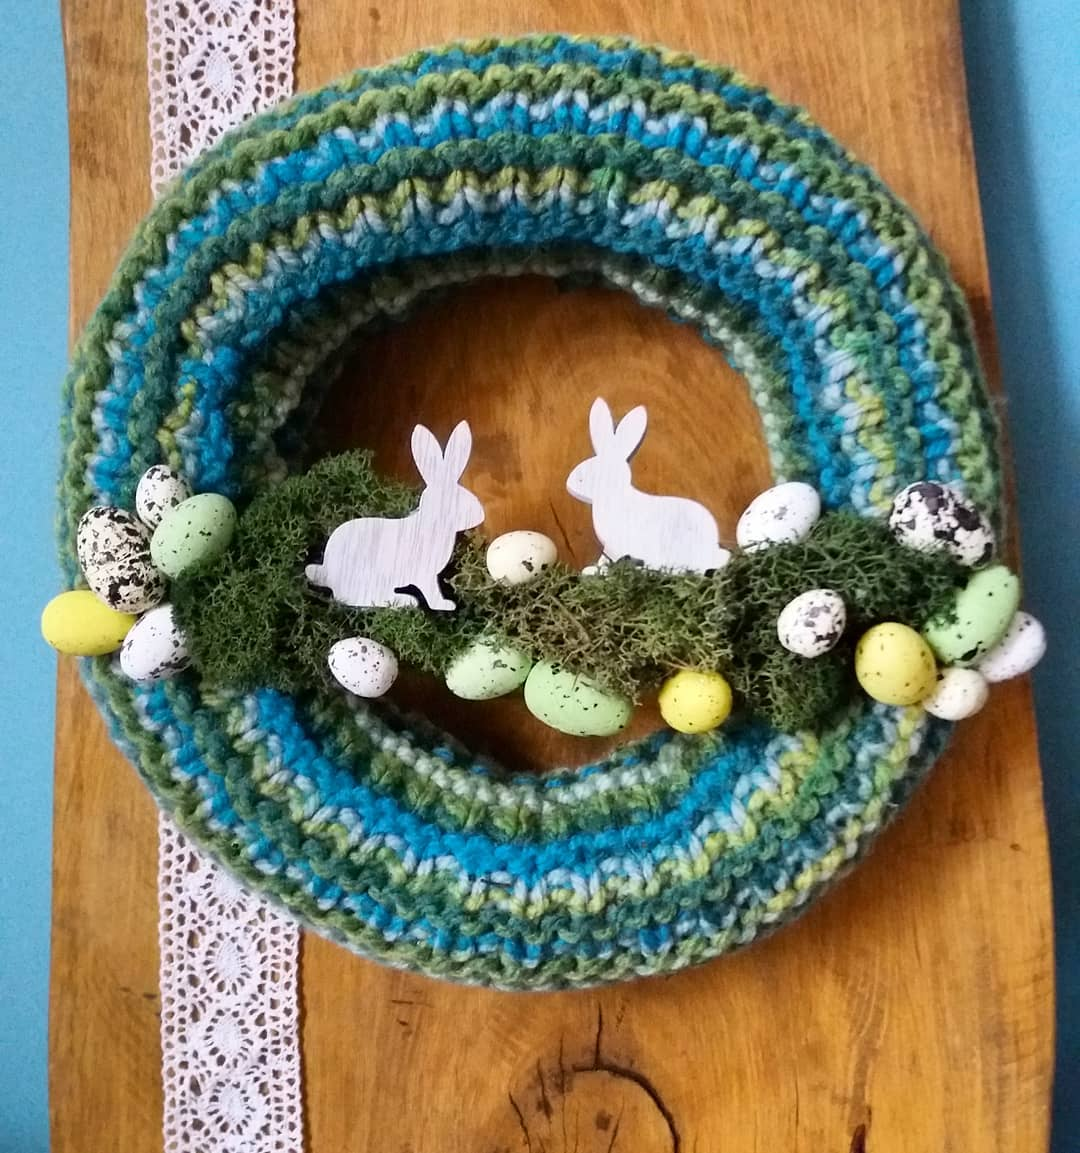 Crochet Knitted Wreath With Eggs And Bunny